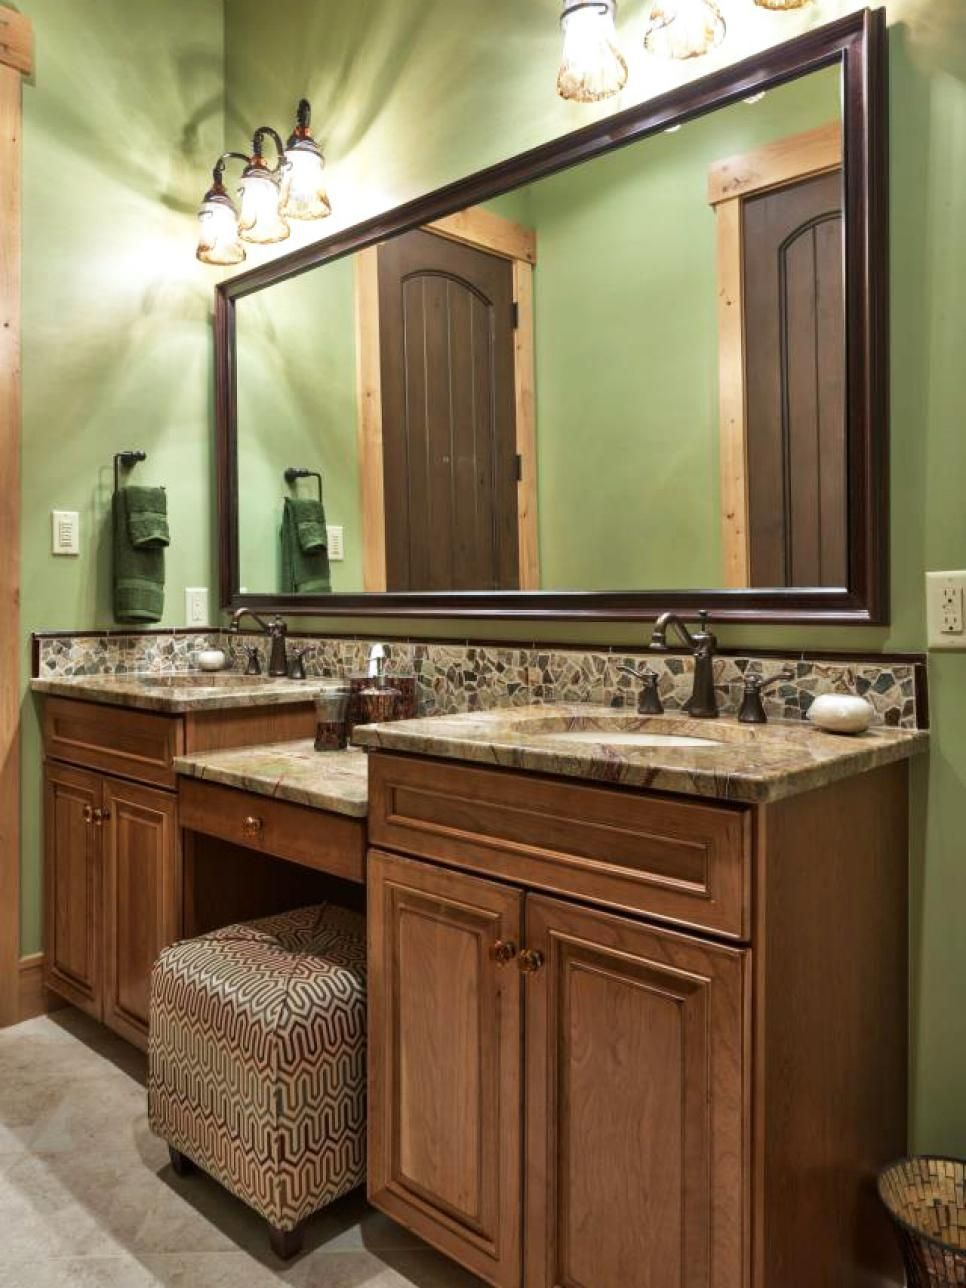 Light wood cabinetry illuminates this traditional bathroom the light wood cabinetry illuminates this traditional bathroom the green walls provide a nice contrast with aloadofball Image collections